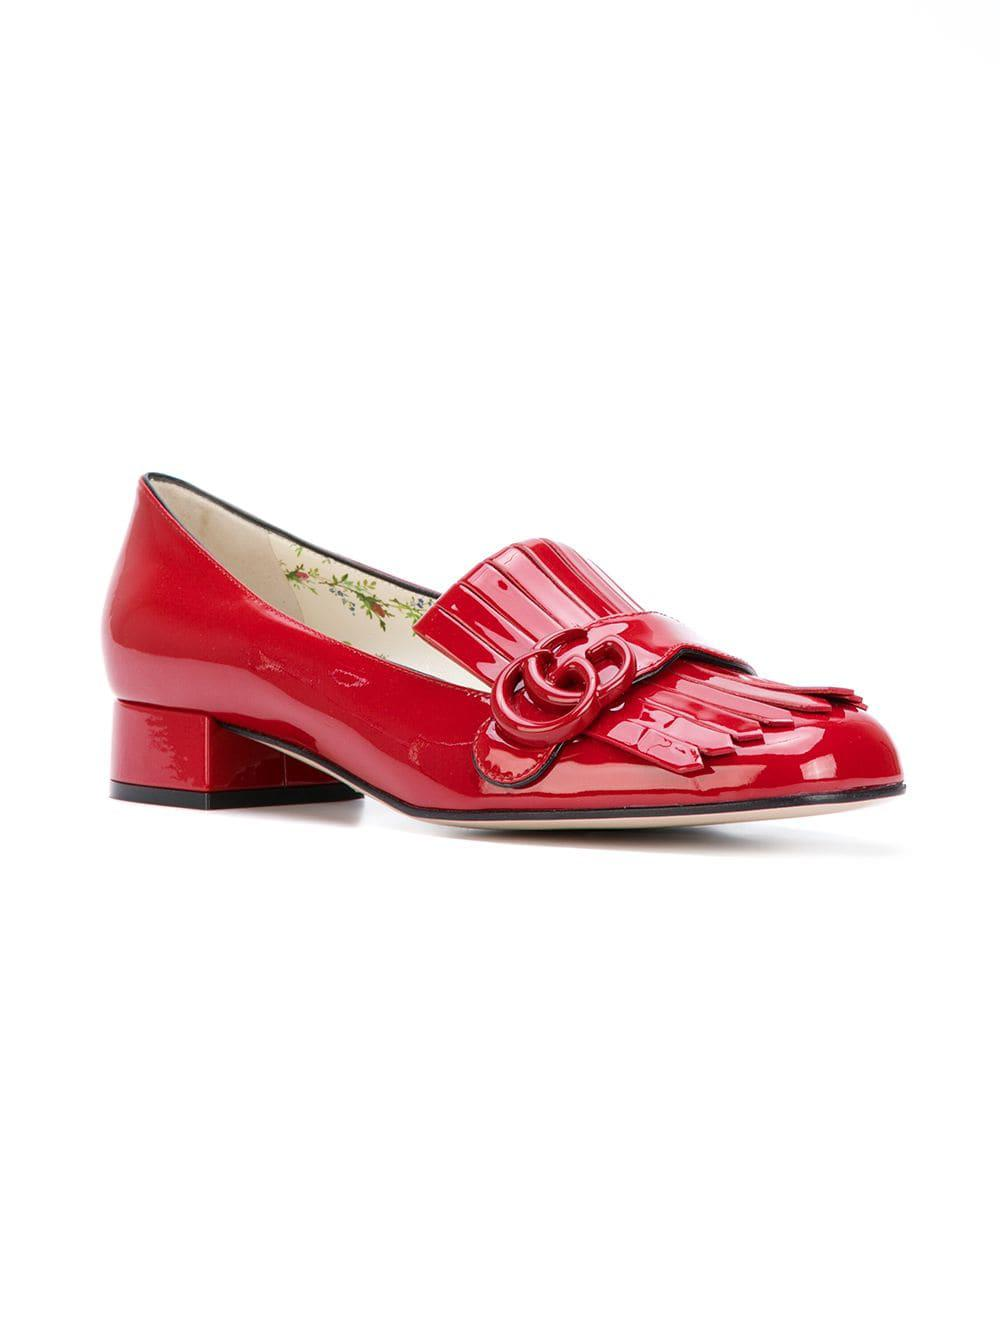 3eca38b7463 Lyst - Gucci Marmont Loafers in Red